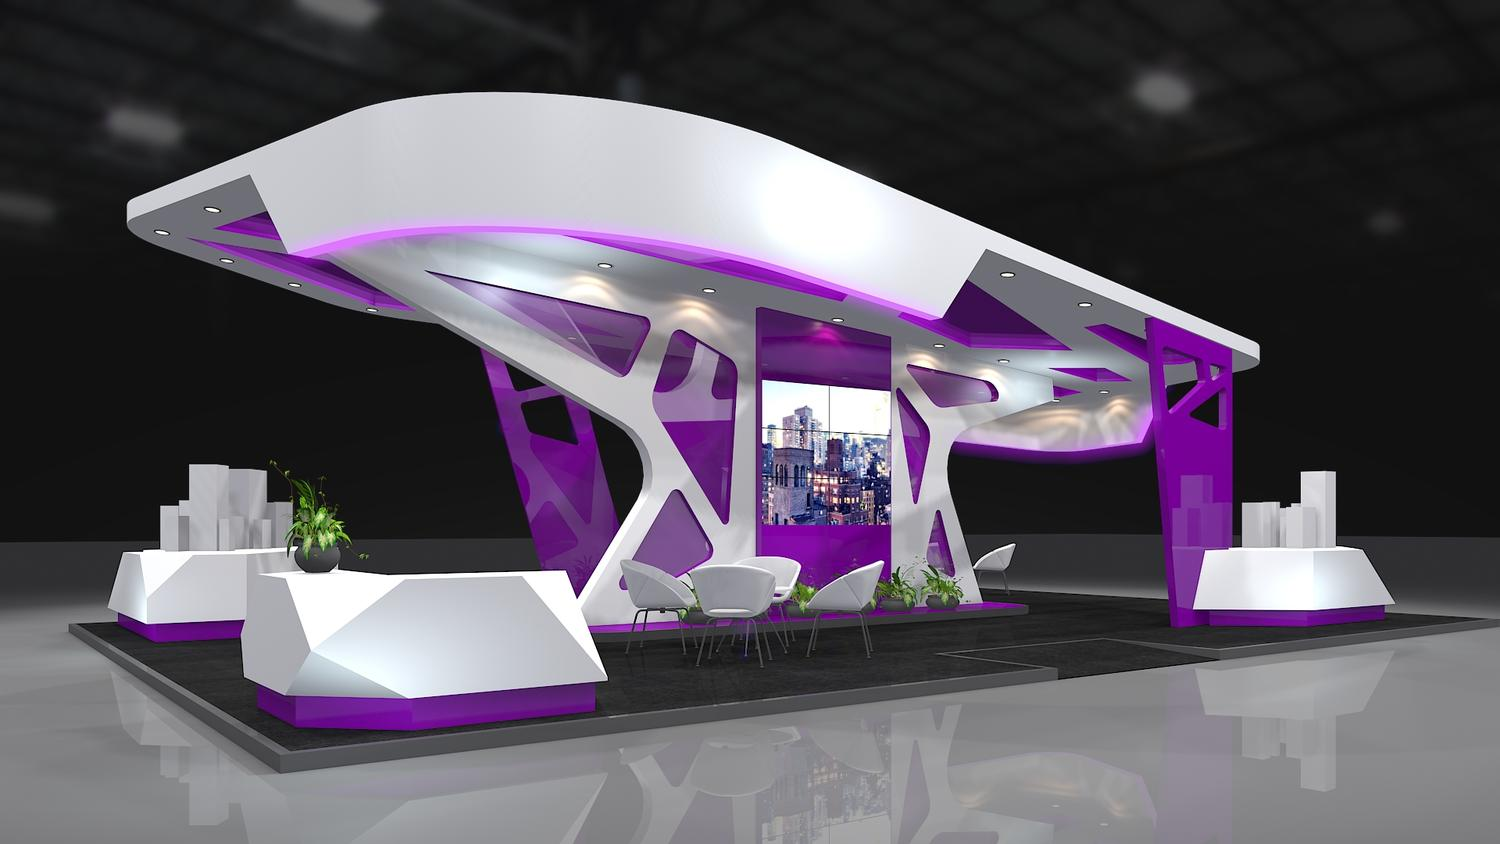 Exhibition Booth 3D Design By AbelLangbid On Envato Studio